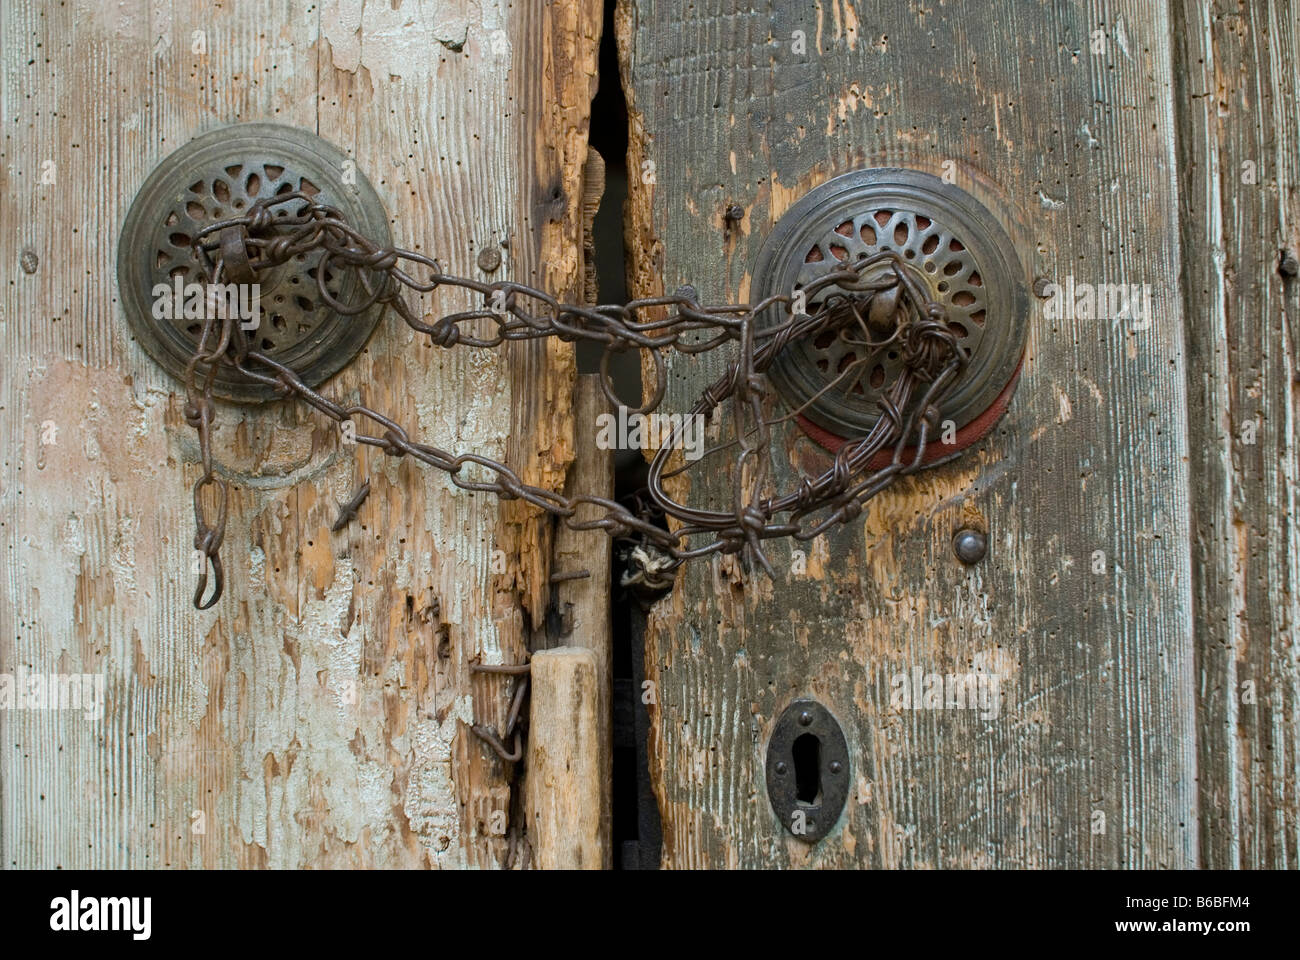 very old door handle and lock Stock Photo, Royalty Free Image ...